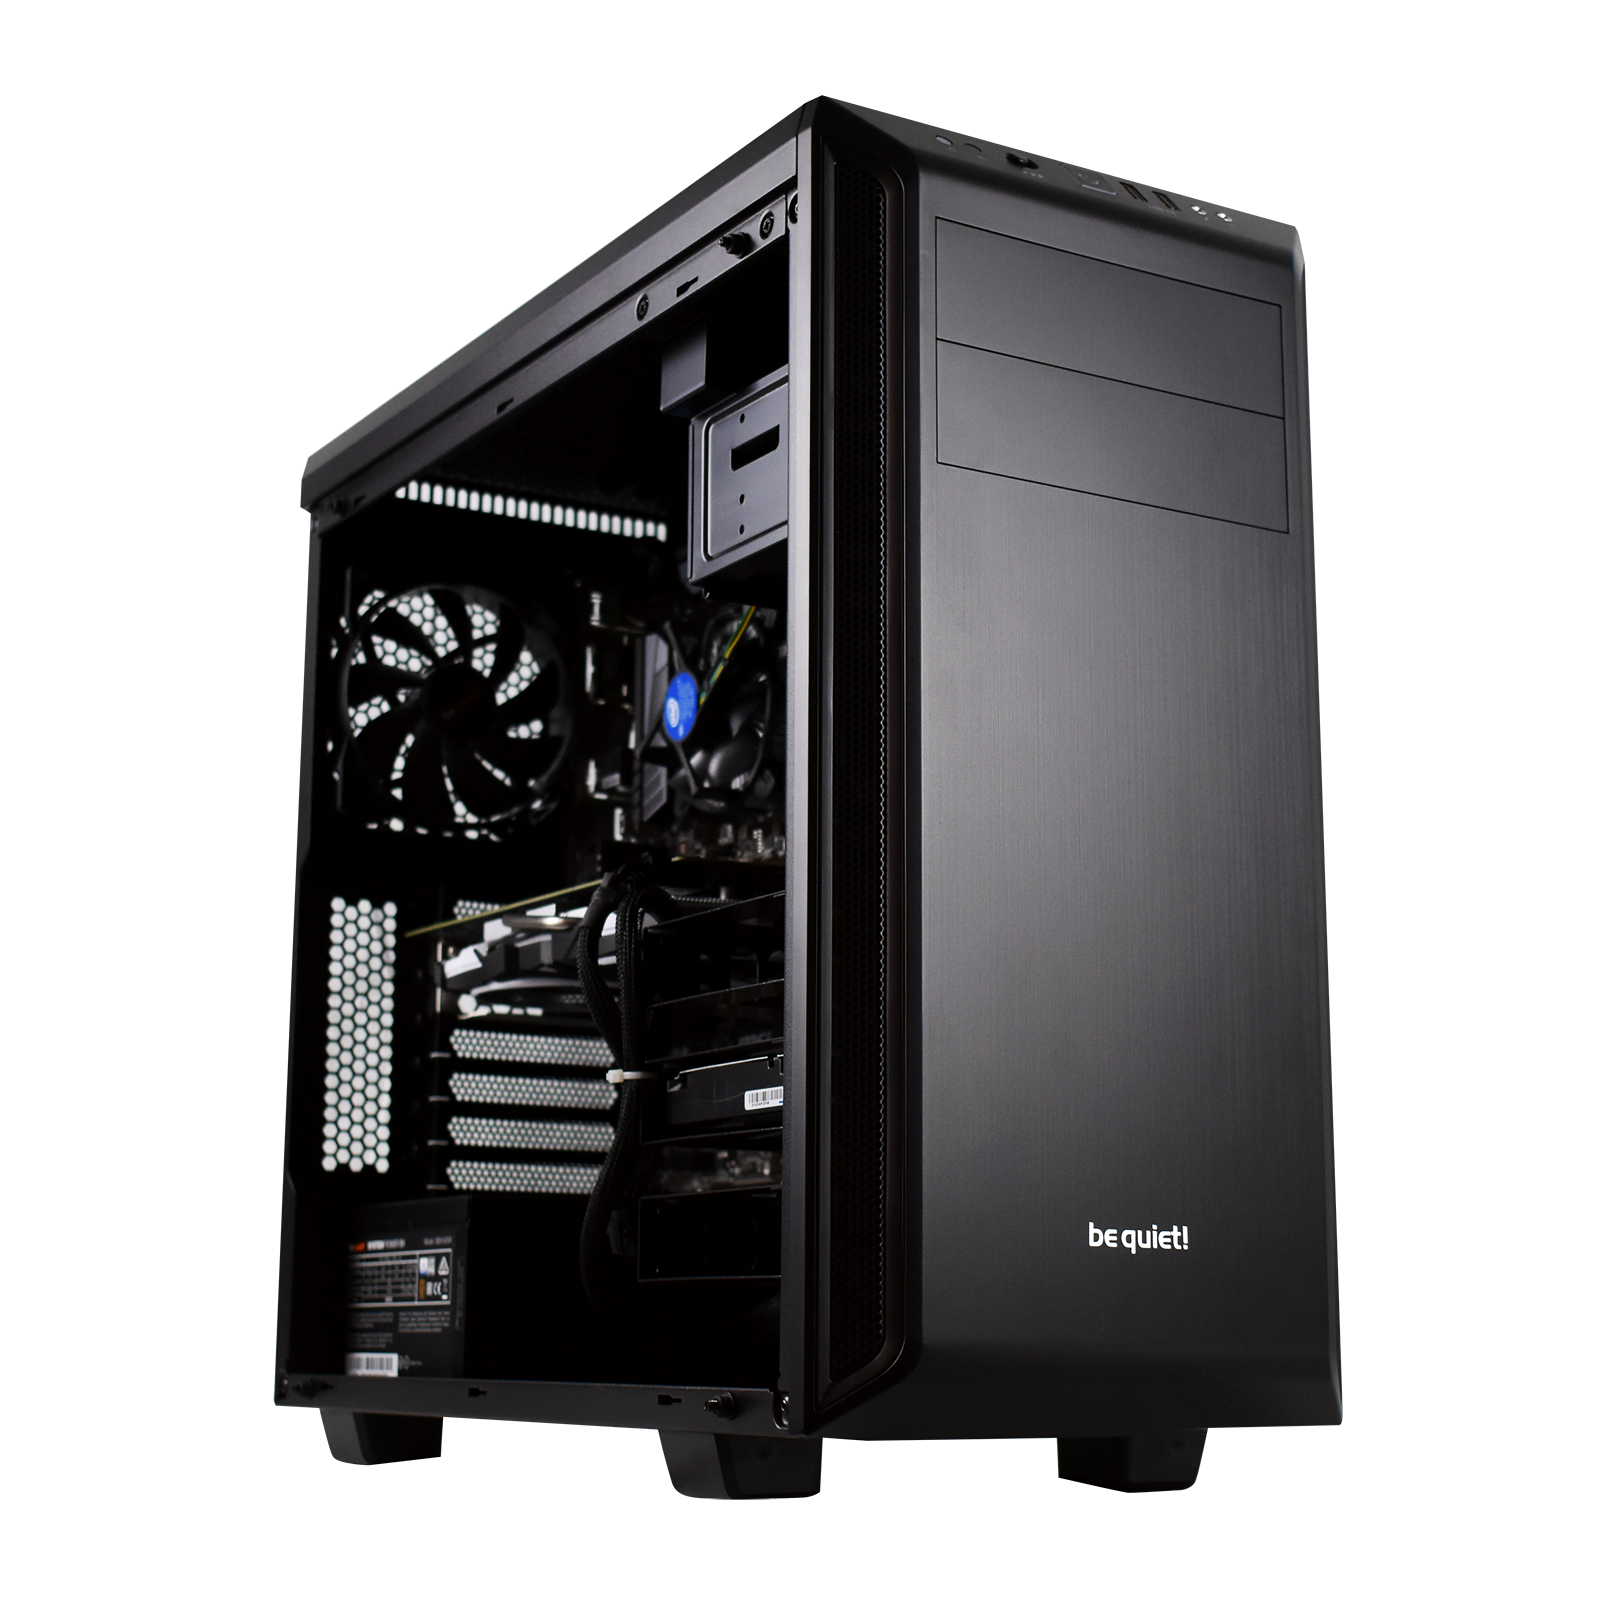 PC Gamer DARK MOON <sup>v3</sup> Intel Core i7 8700 - 16Go (2x8Go) DDR4 - MSI GTX 1060 6Go - SSD 240Go